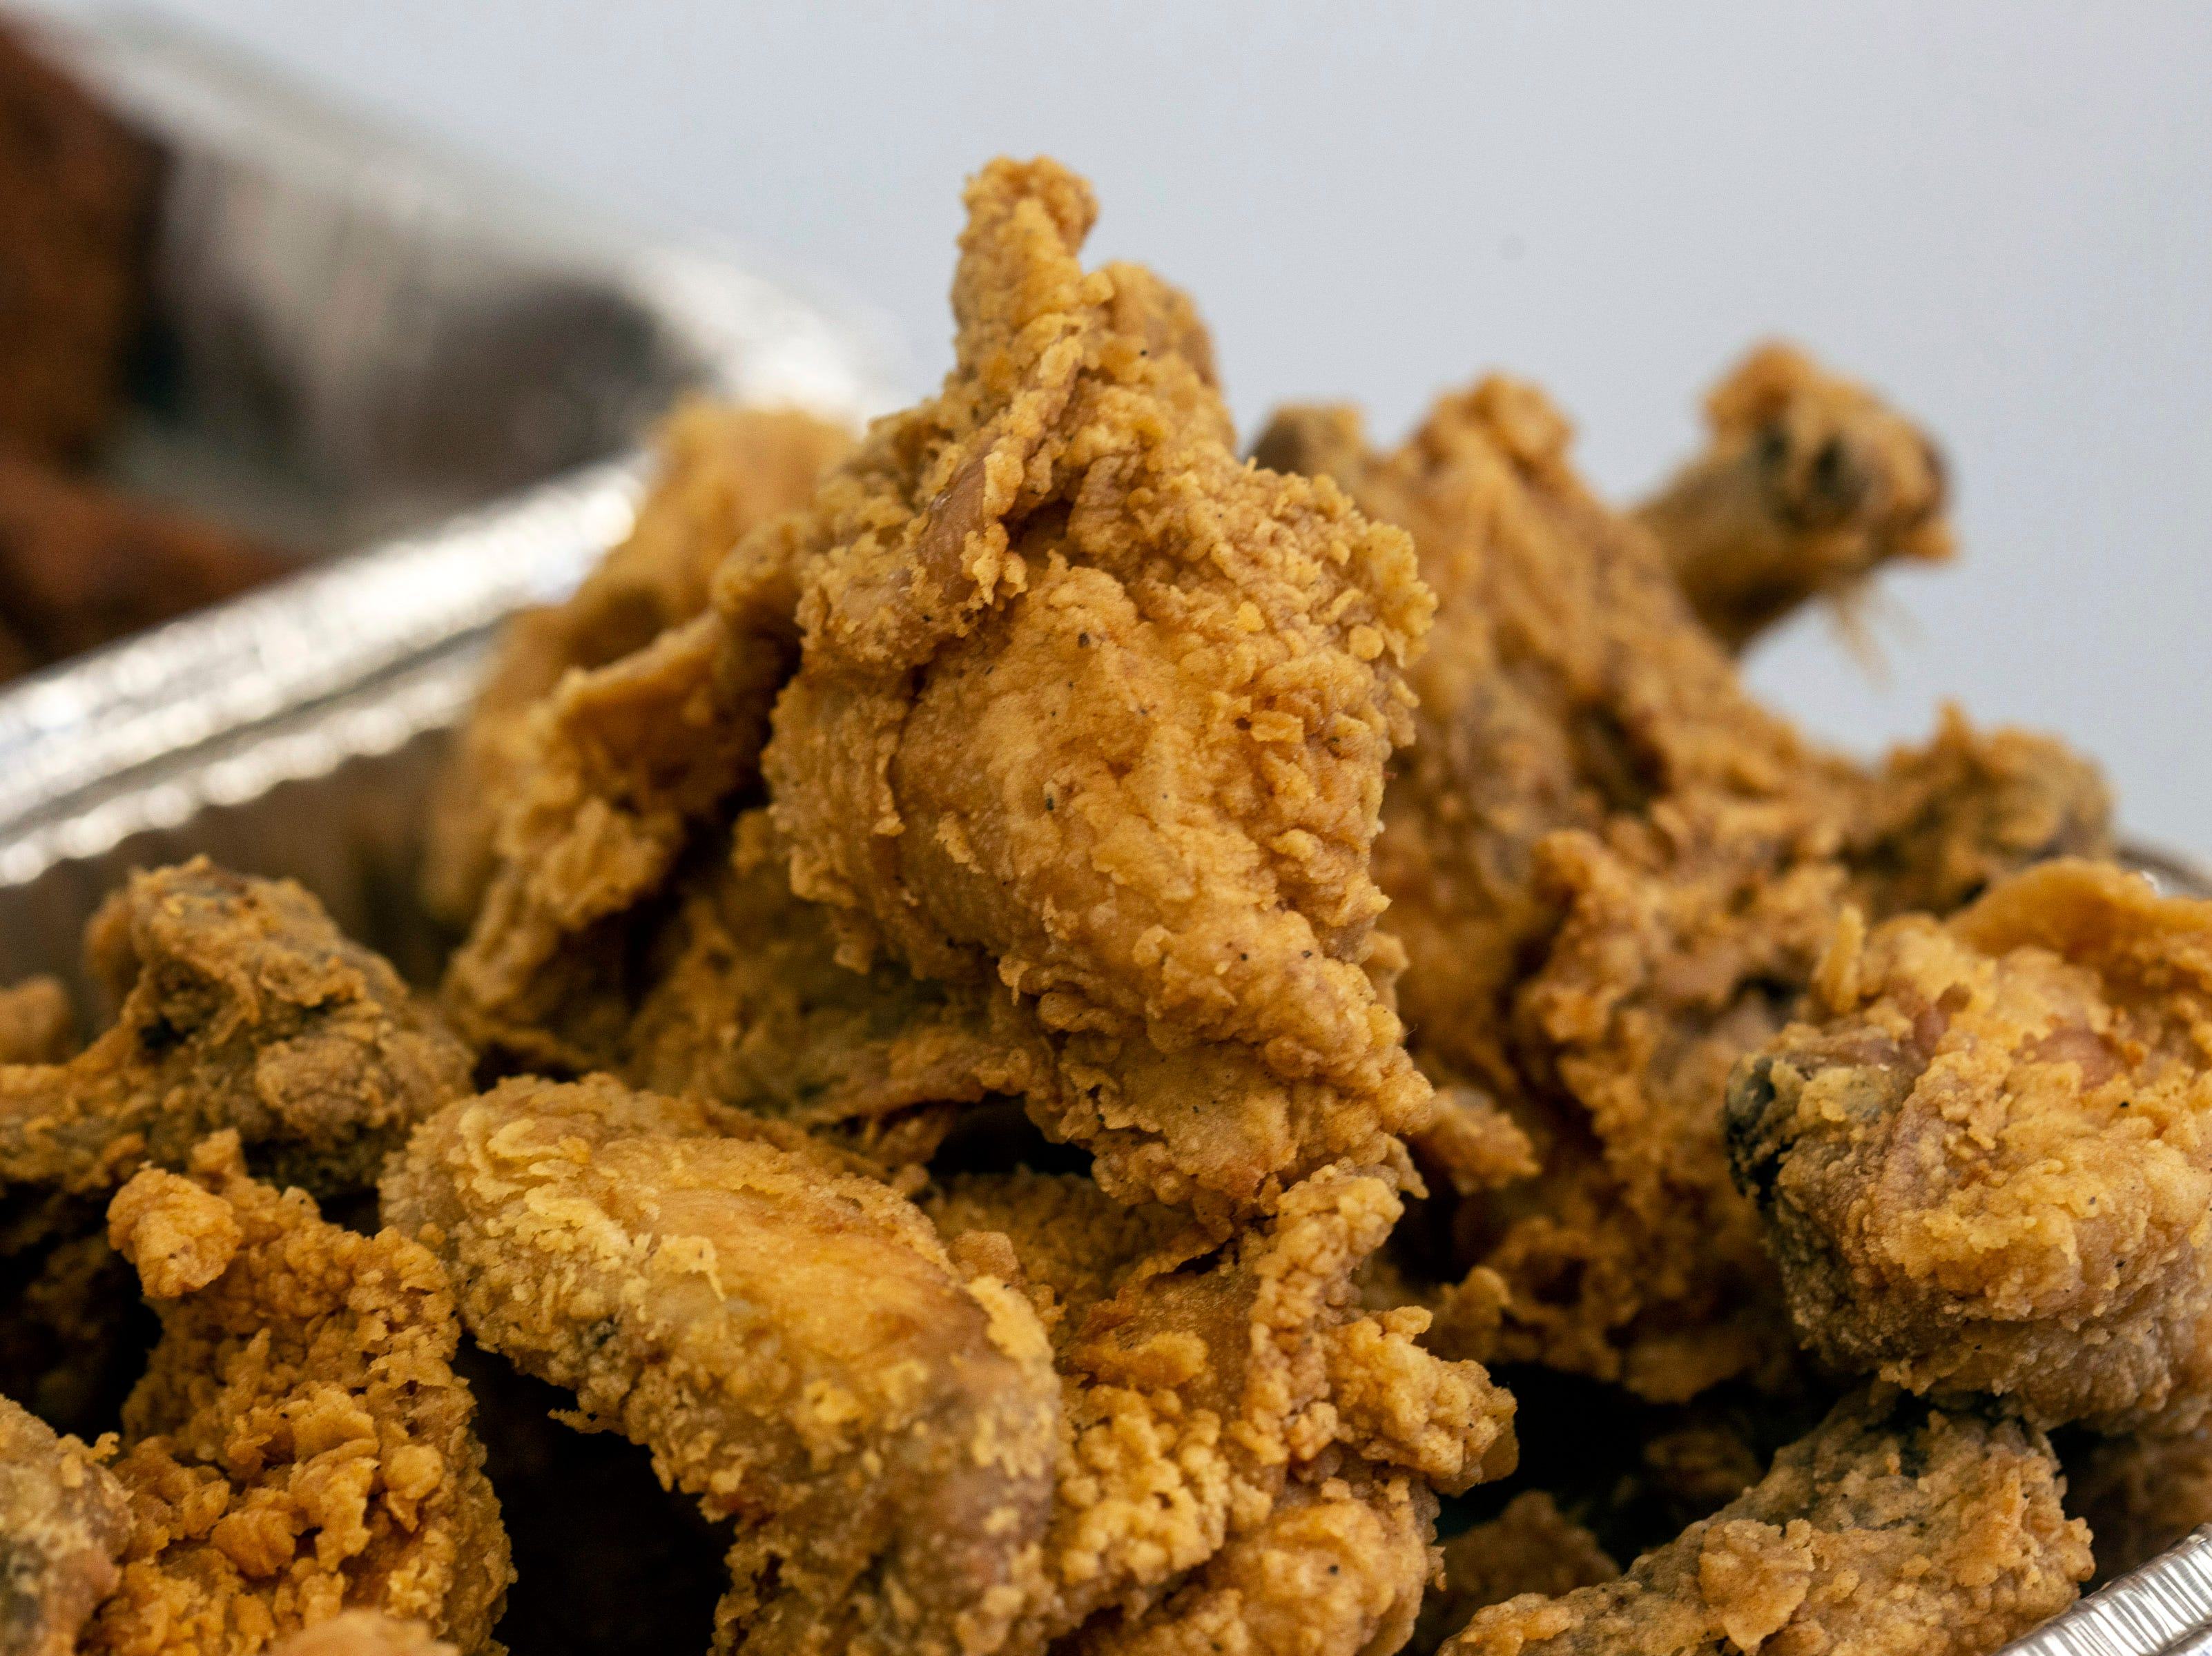 LK's famous fried chicken is a staple of the Soul Food Sundays at Lucretia's Kitchen. 9/9/18